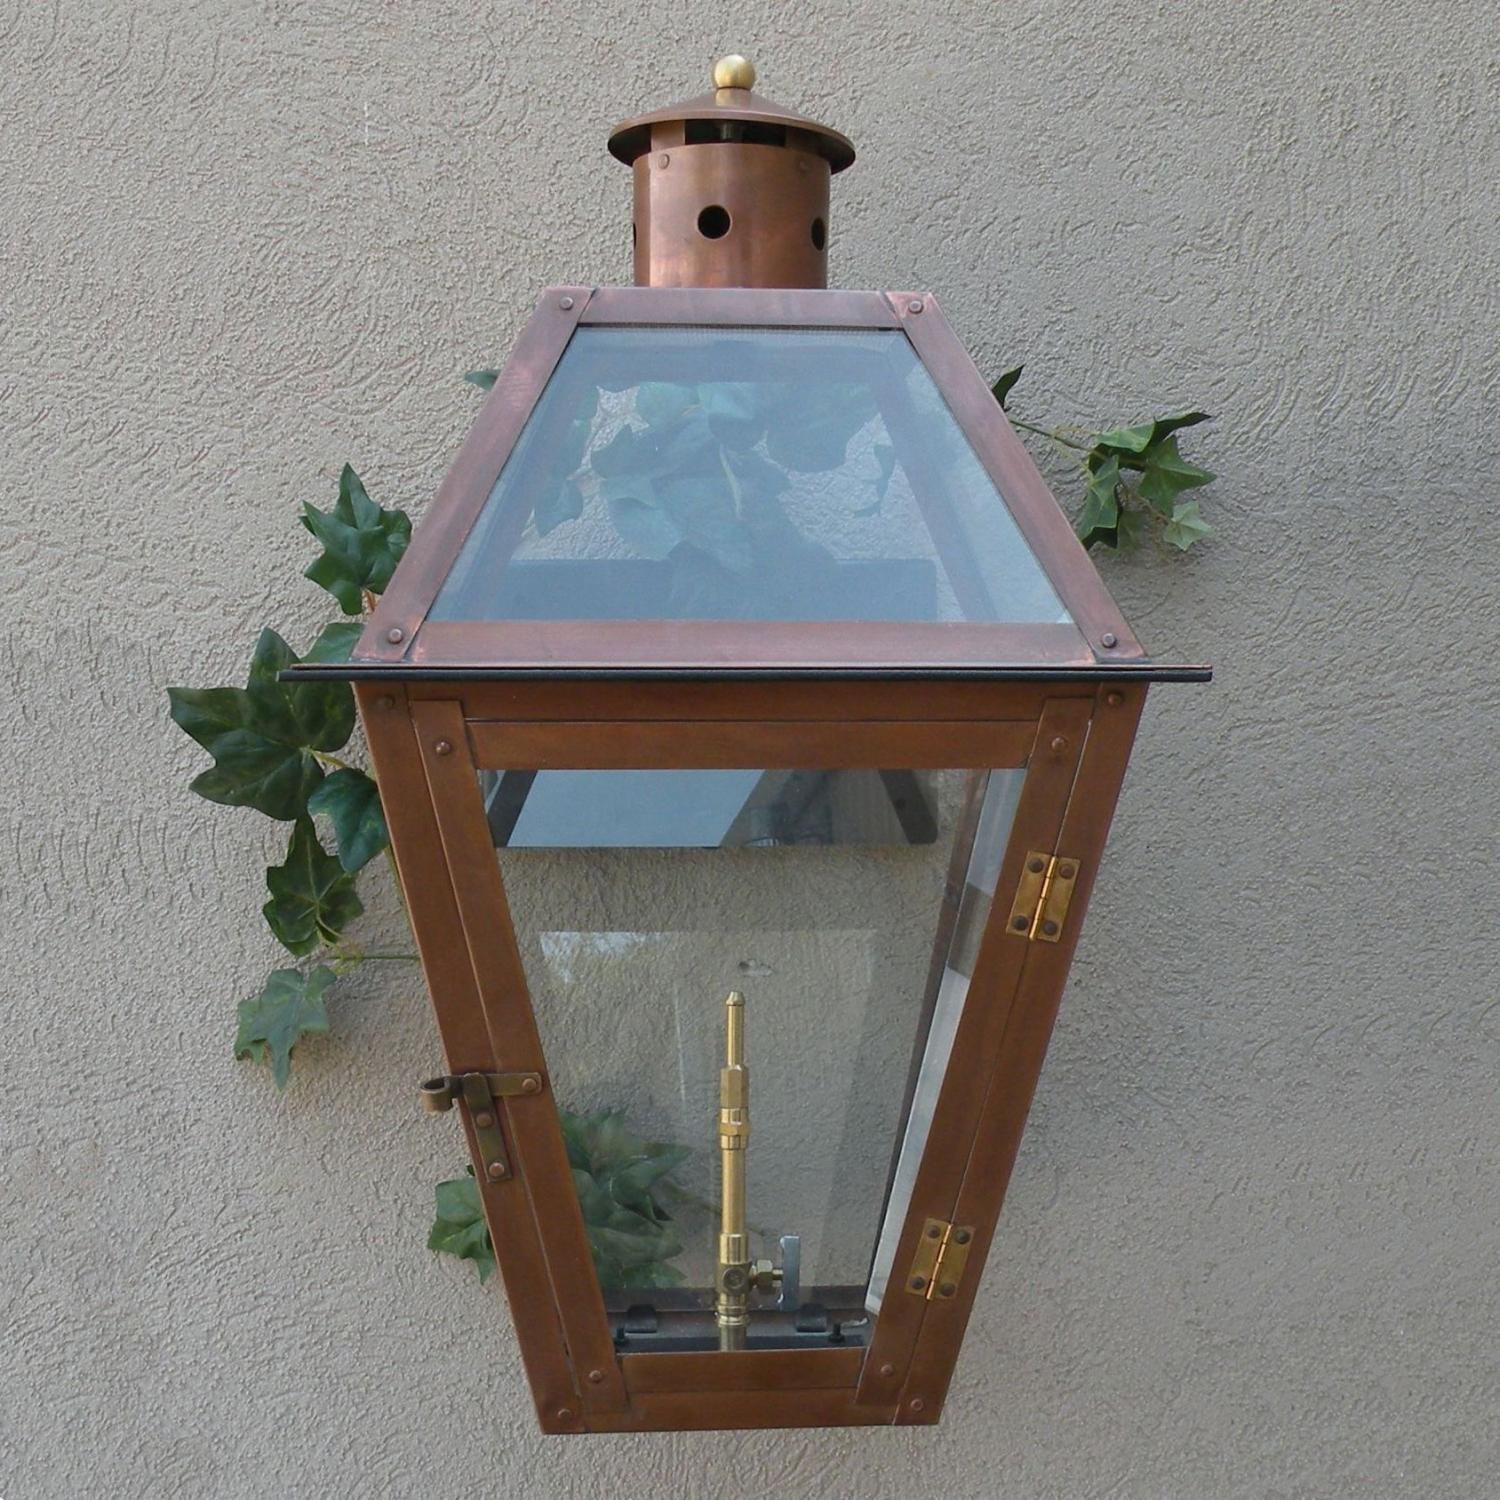 Regency Gl22 Chalmette Propane Gas Light With Open Flame Burner And Manual Ignition On Wall Mustache Mount at Sears.com